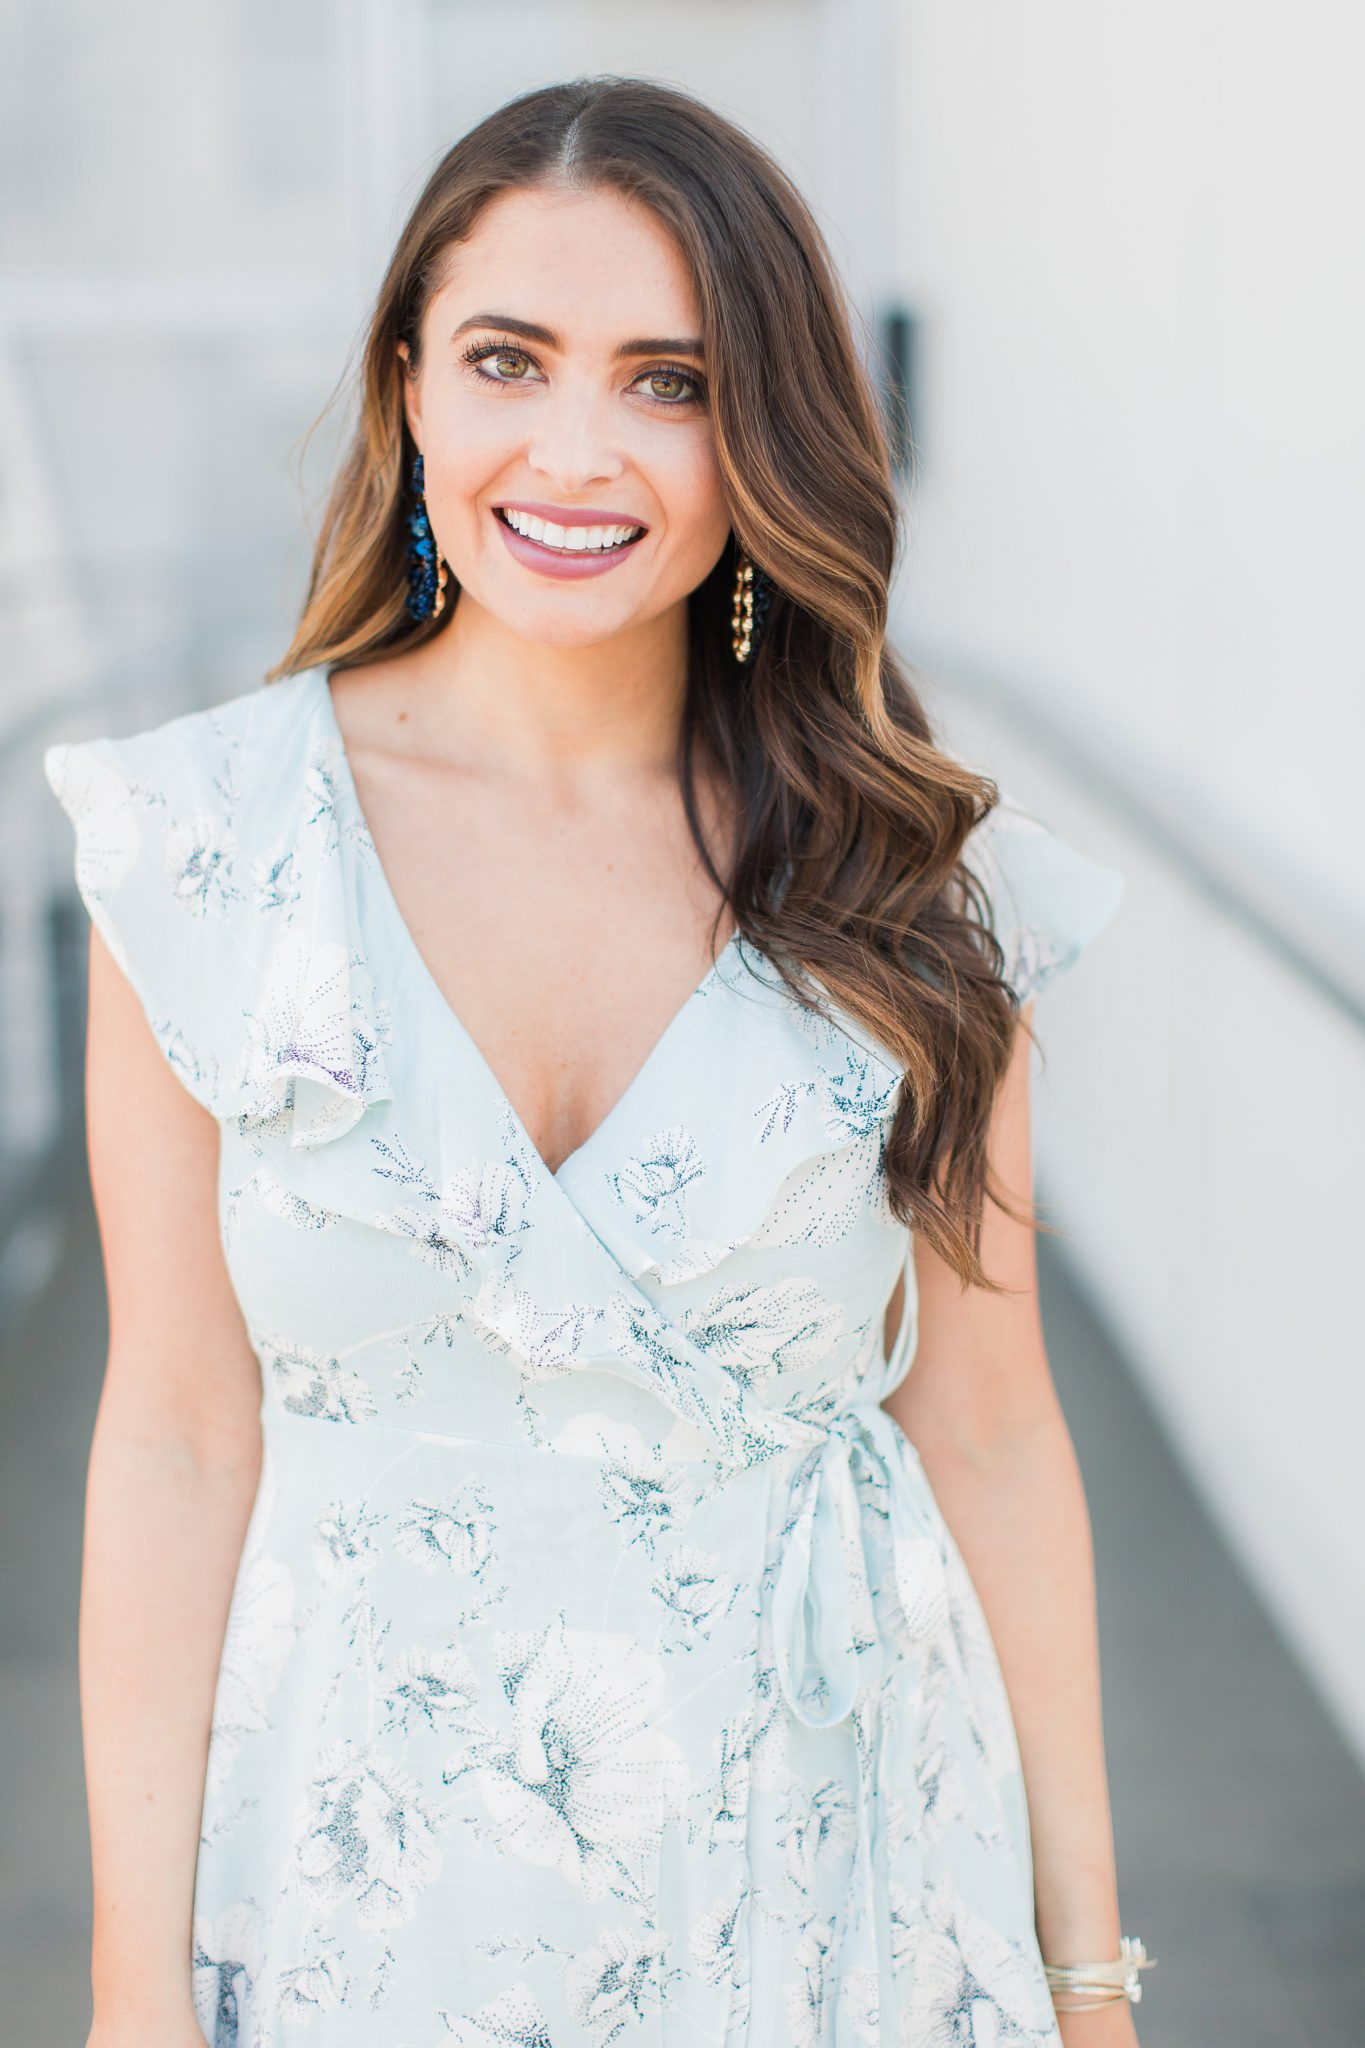 Blue floral wrap dress with ruffle detail - My Favorite Cute Easter Dresses by popular Orange County fashion blogger Maxie Elise